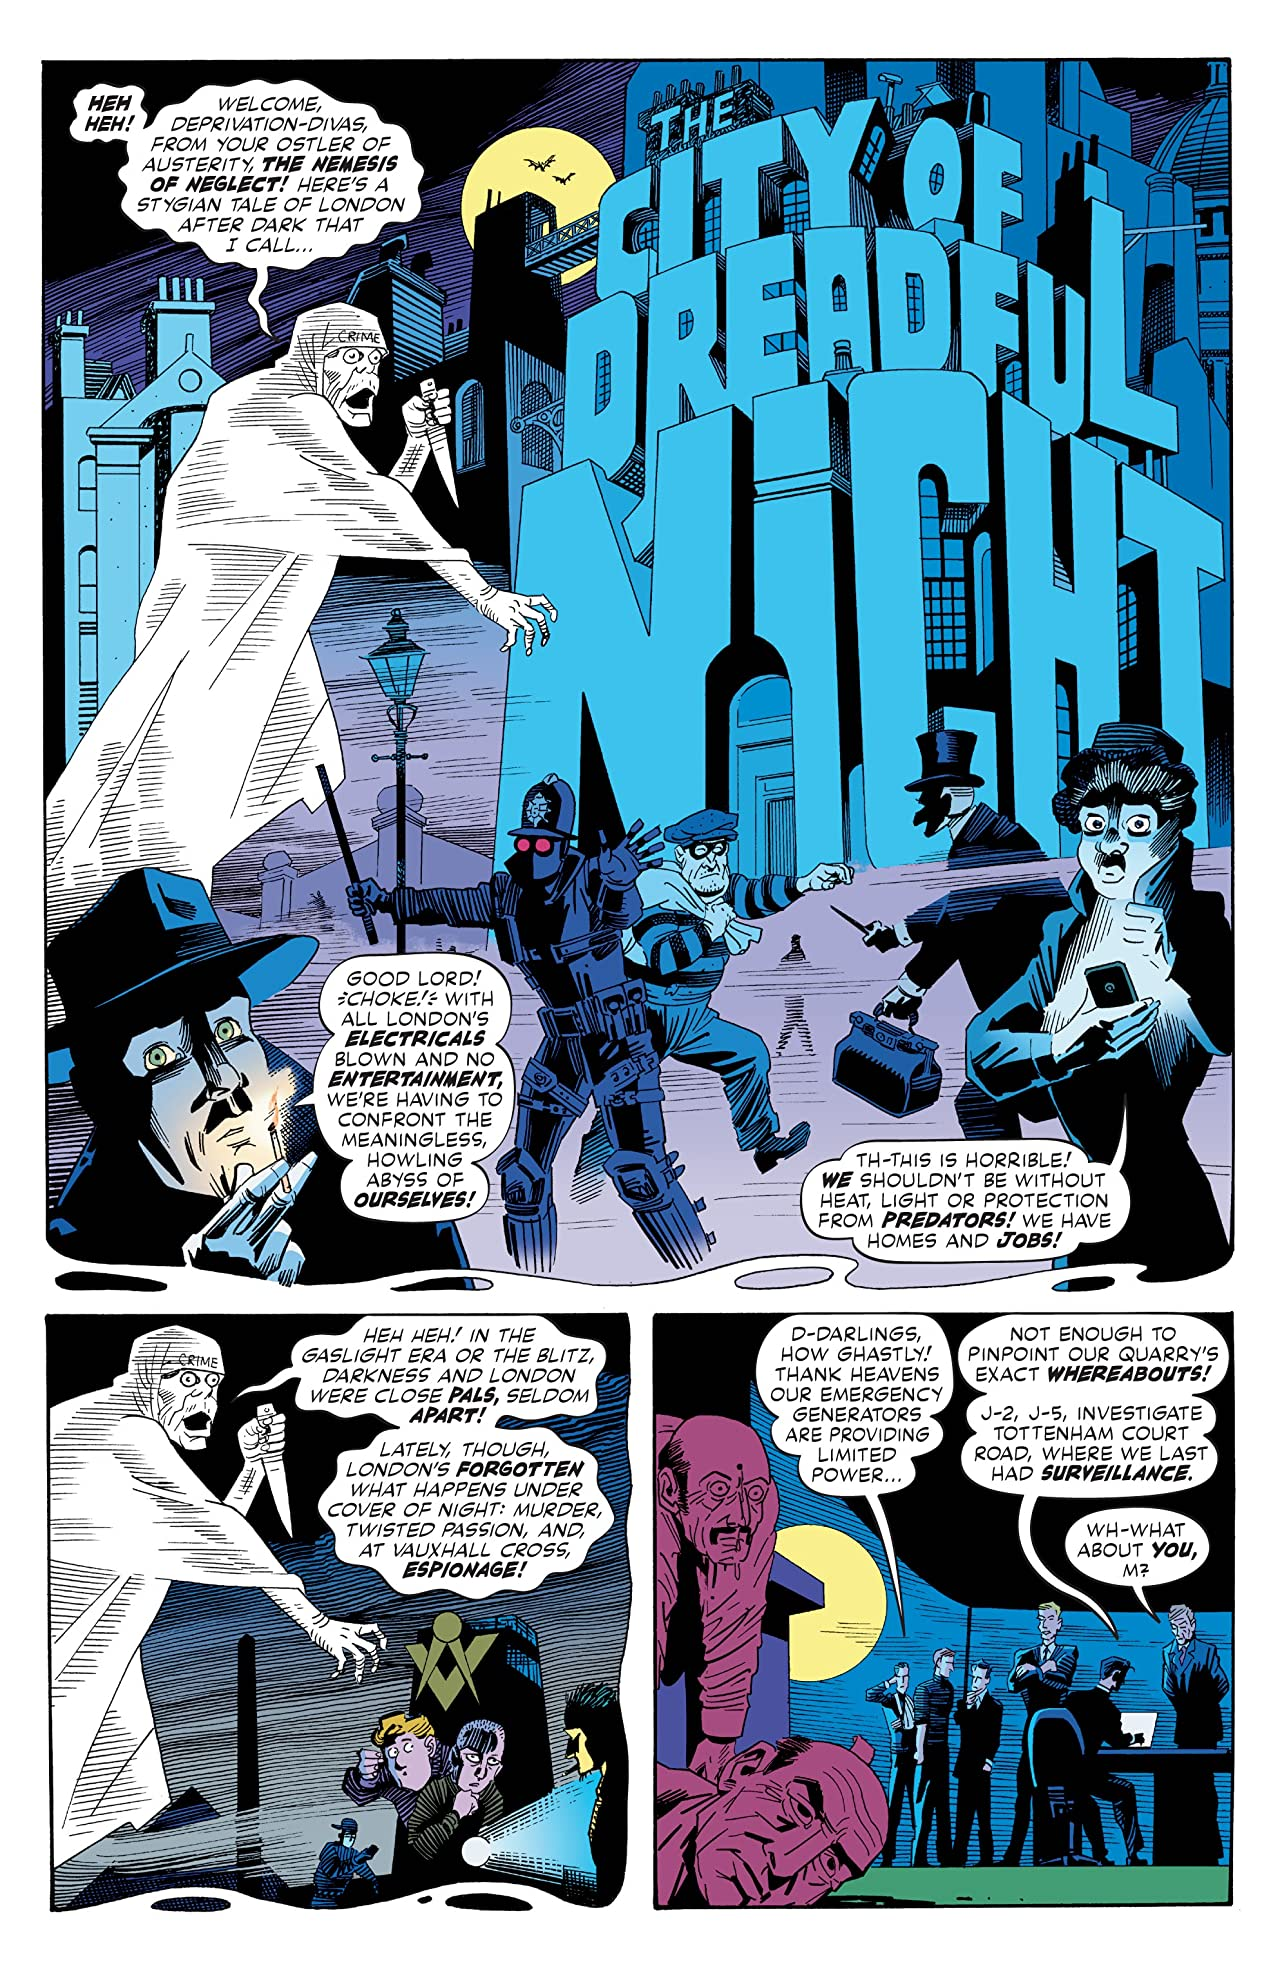 The League of Extraordinary Gentlemen: The Tempest #5 (of 6)